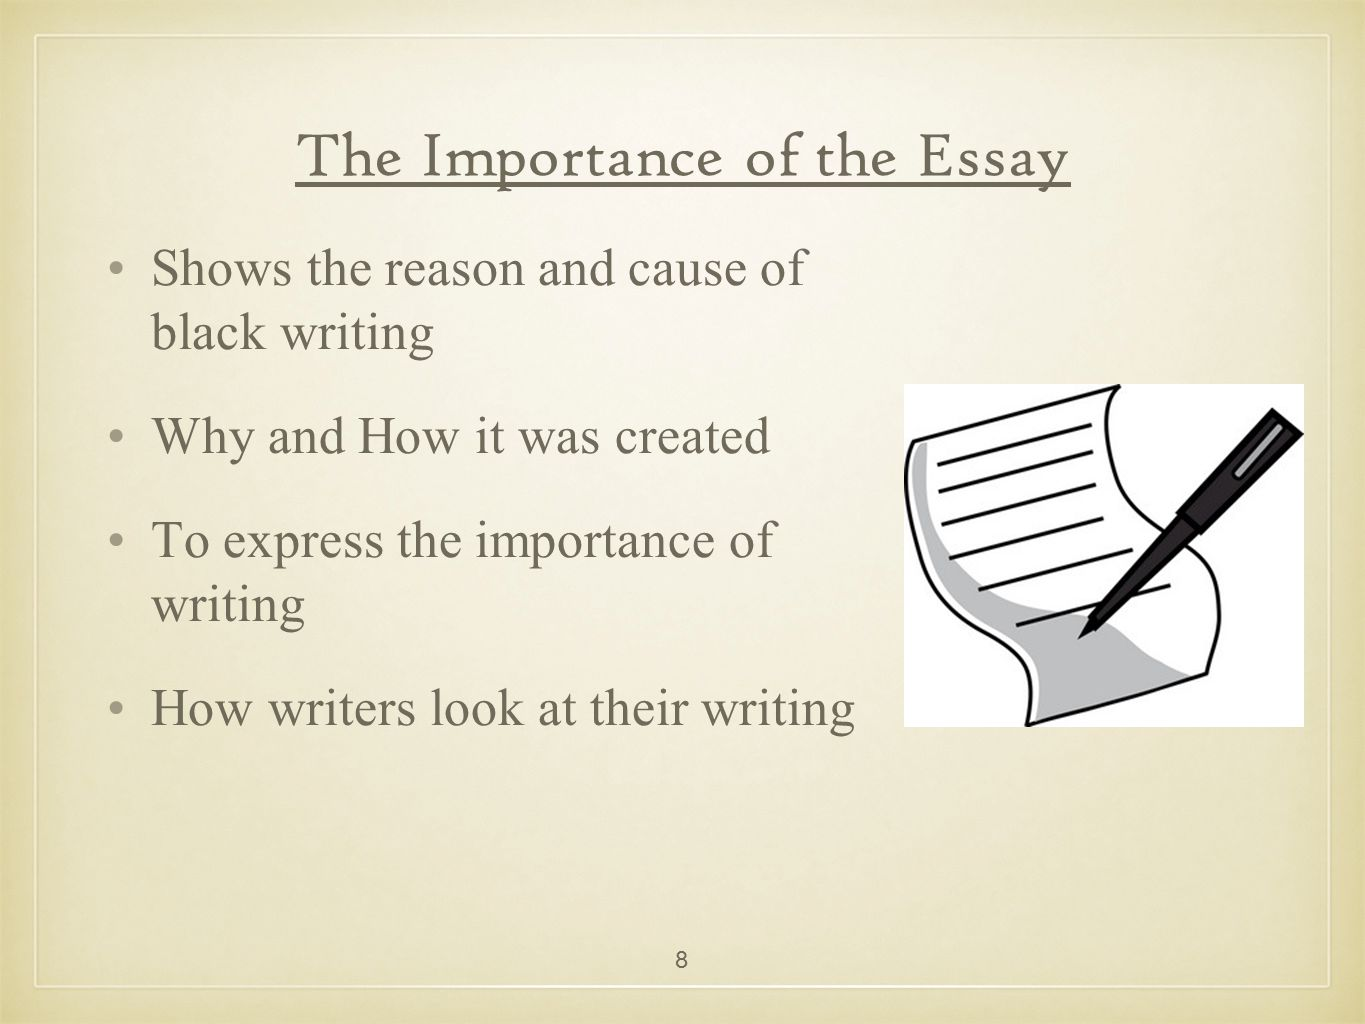 The Importance of the Essay